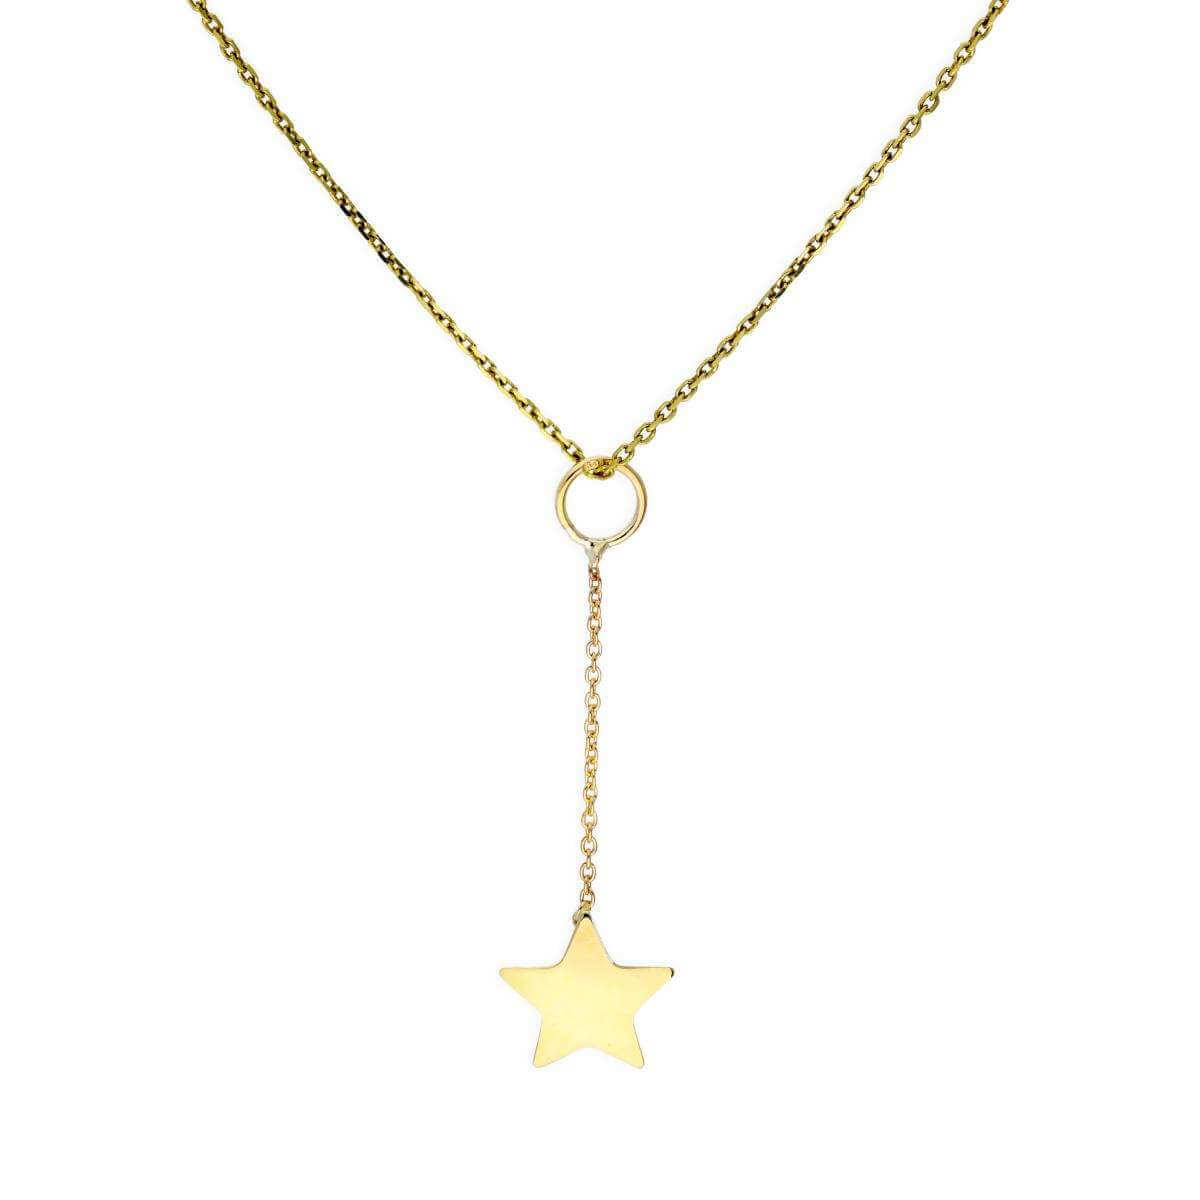 9ct Gold Star Drop Pendant on Chain 16 - 20 Inches